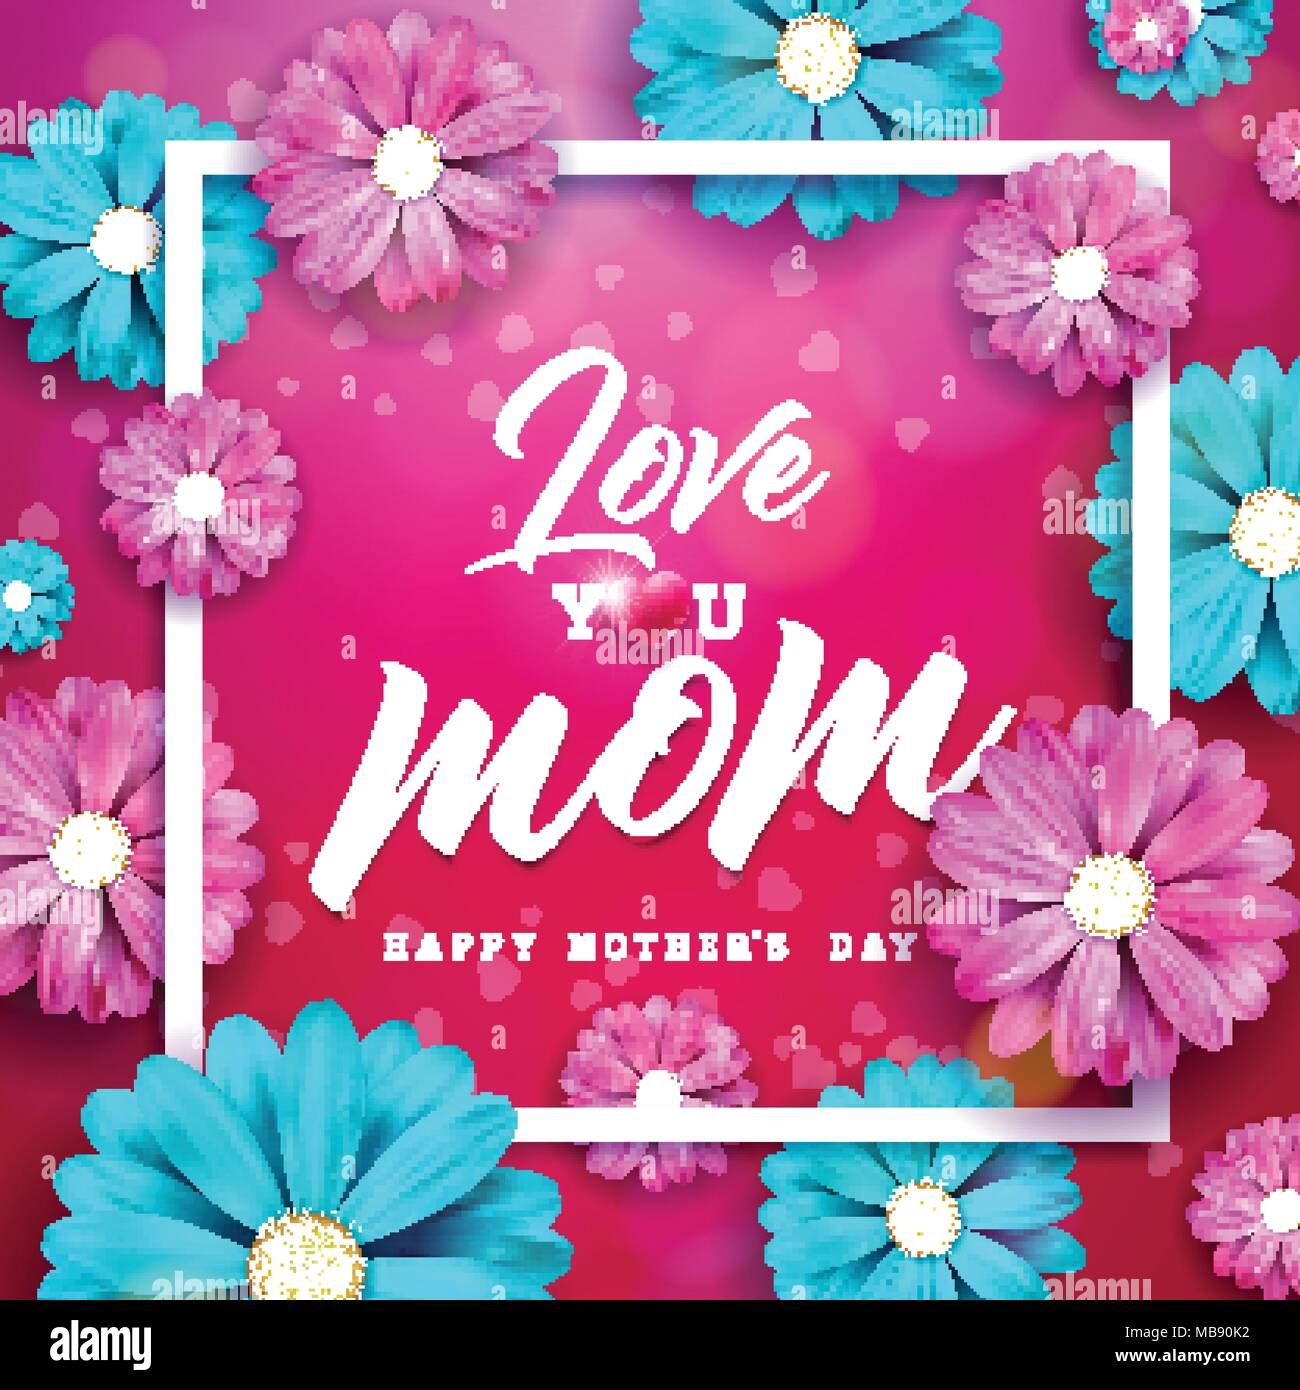 Happy mothers day greeting card design with flower and typographic happy mothers day greeting card design with flower and typographic elements on red background i love you mom vector celebration illustration template for m4hsunfo